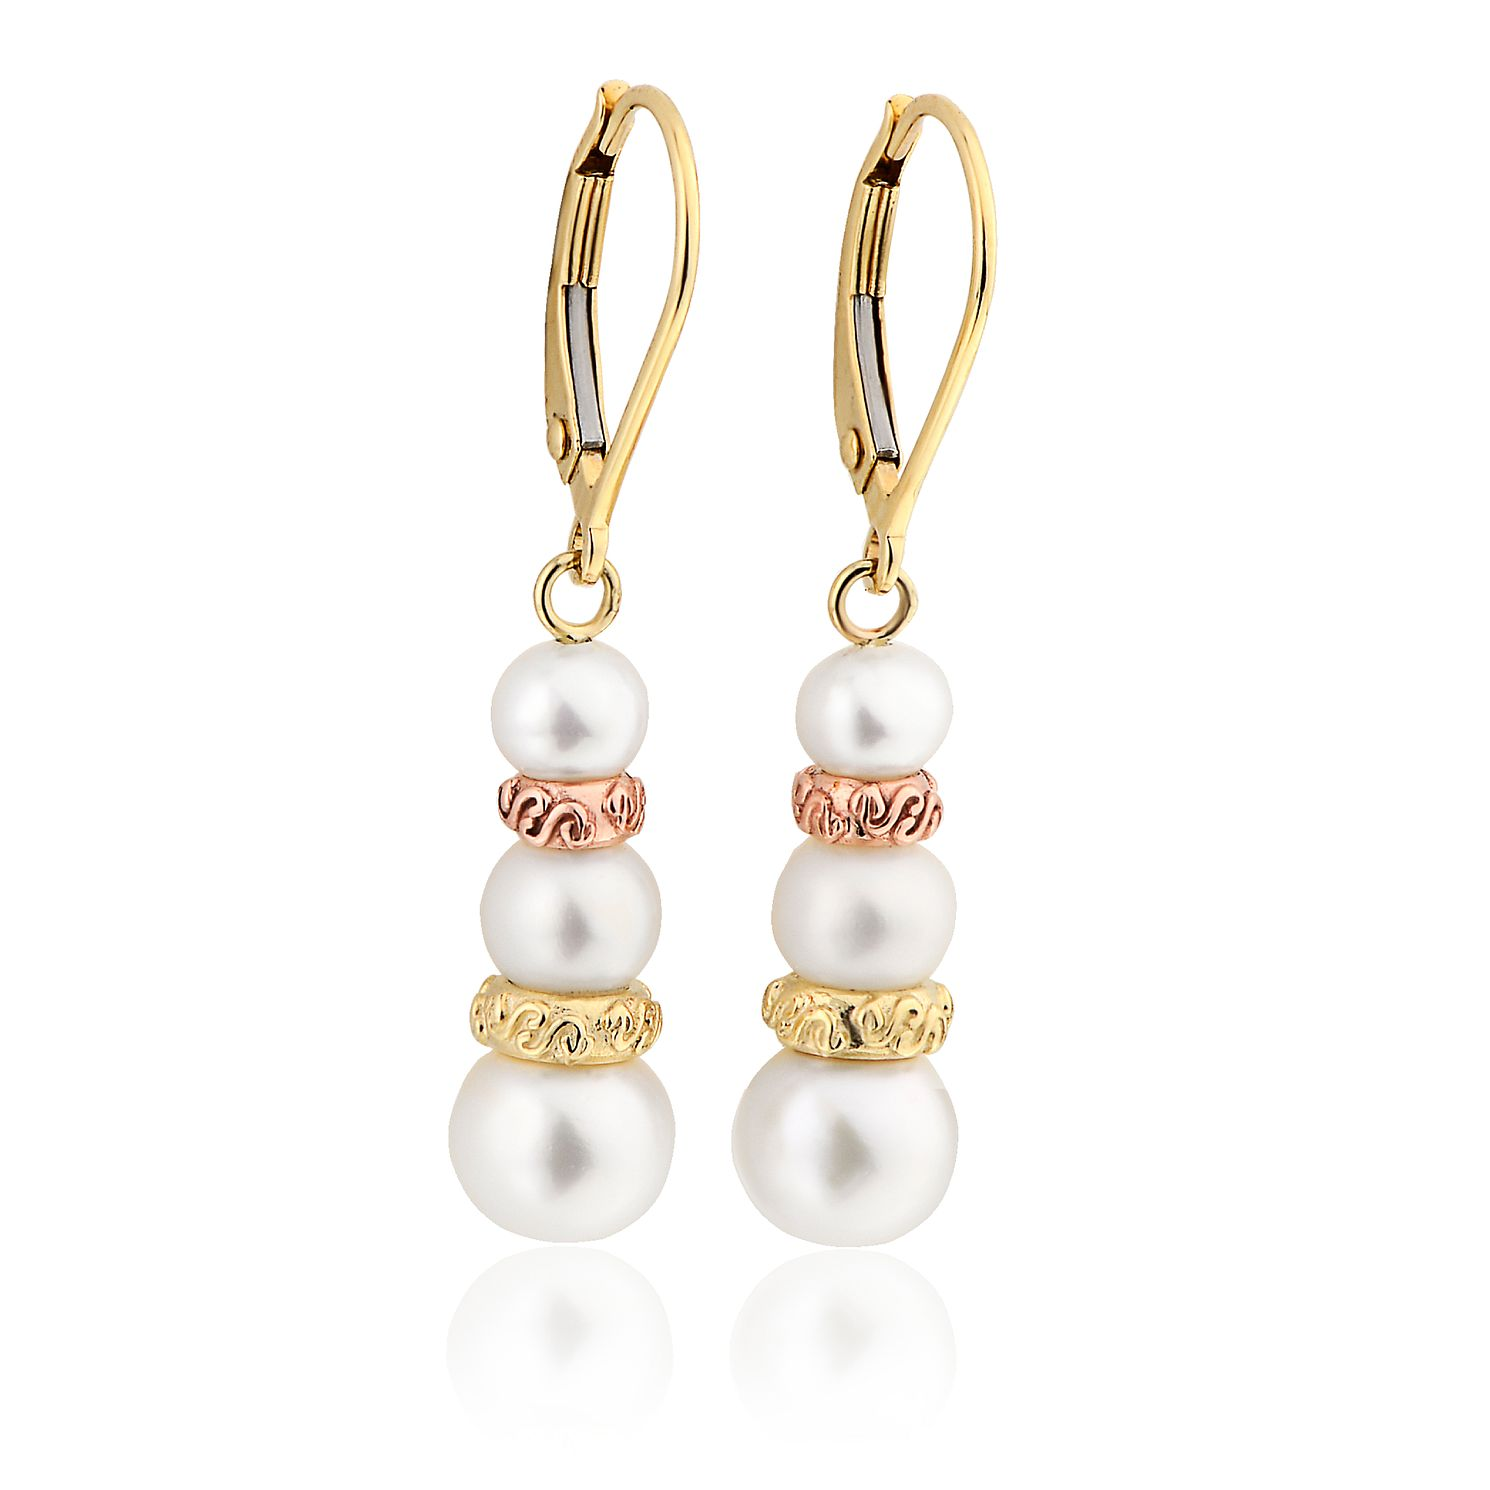 Clogau 9ct Gold Tree Of Life Pearl Drop Earrings - Product number 8423288